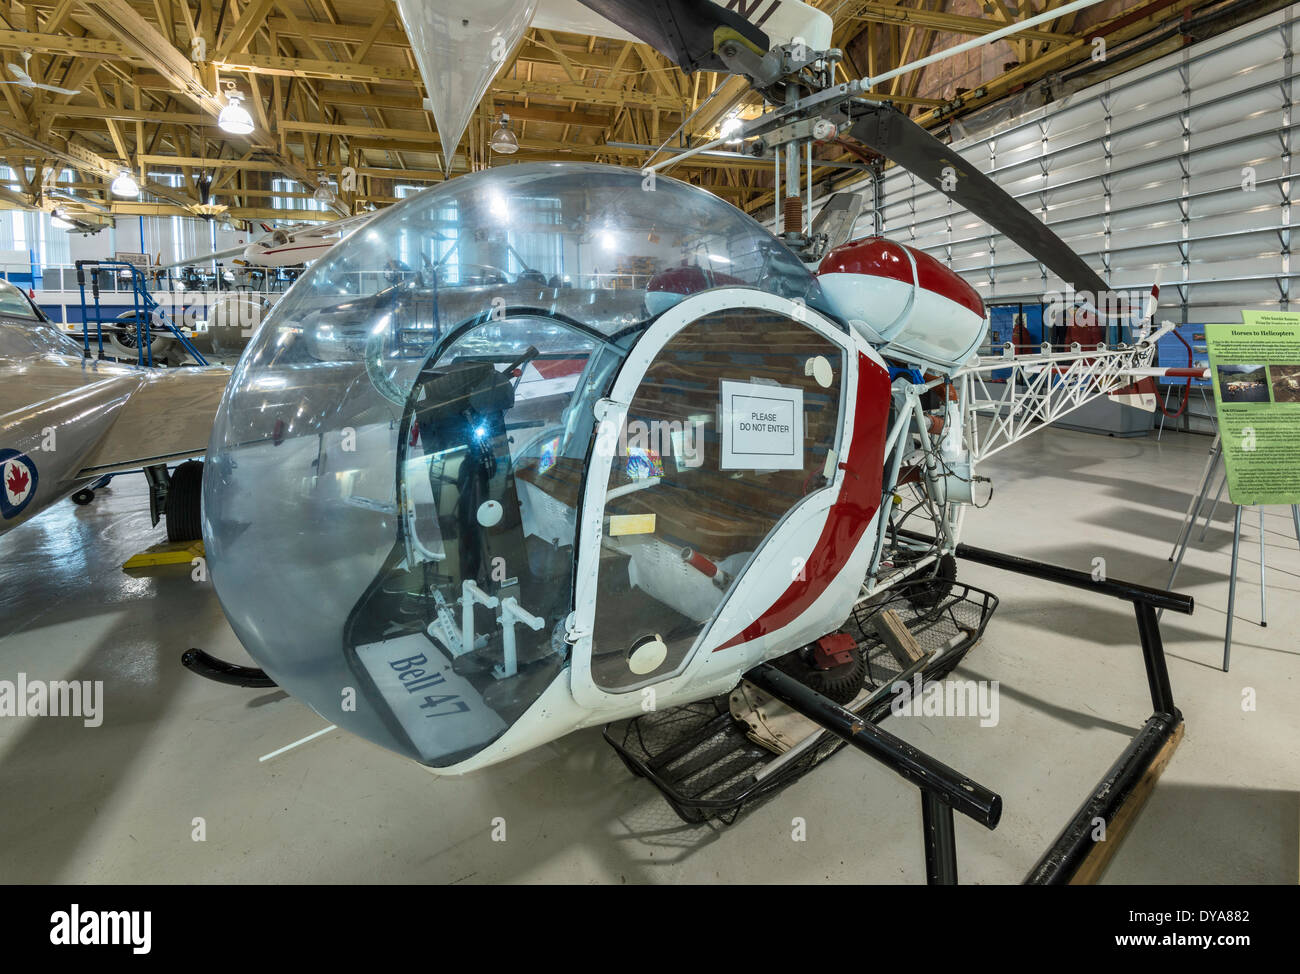 Bell 47 multipurpose helicopter at Main Hangar at Aero Space Museum of Calgary, Calgary, Alberta, Canada - Stock Image